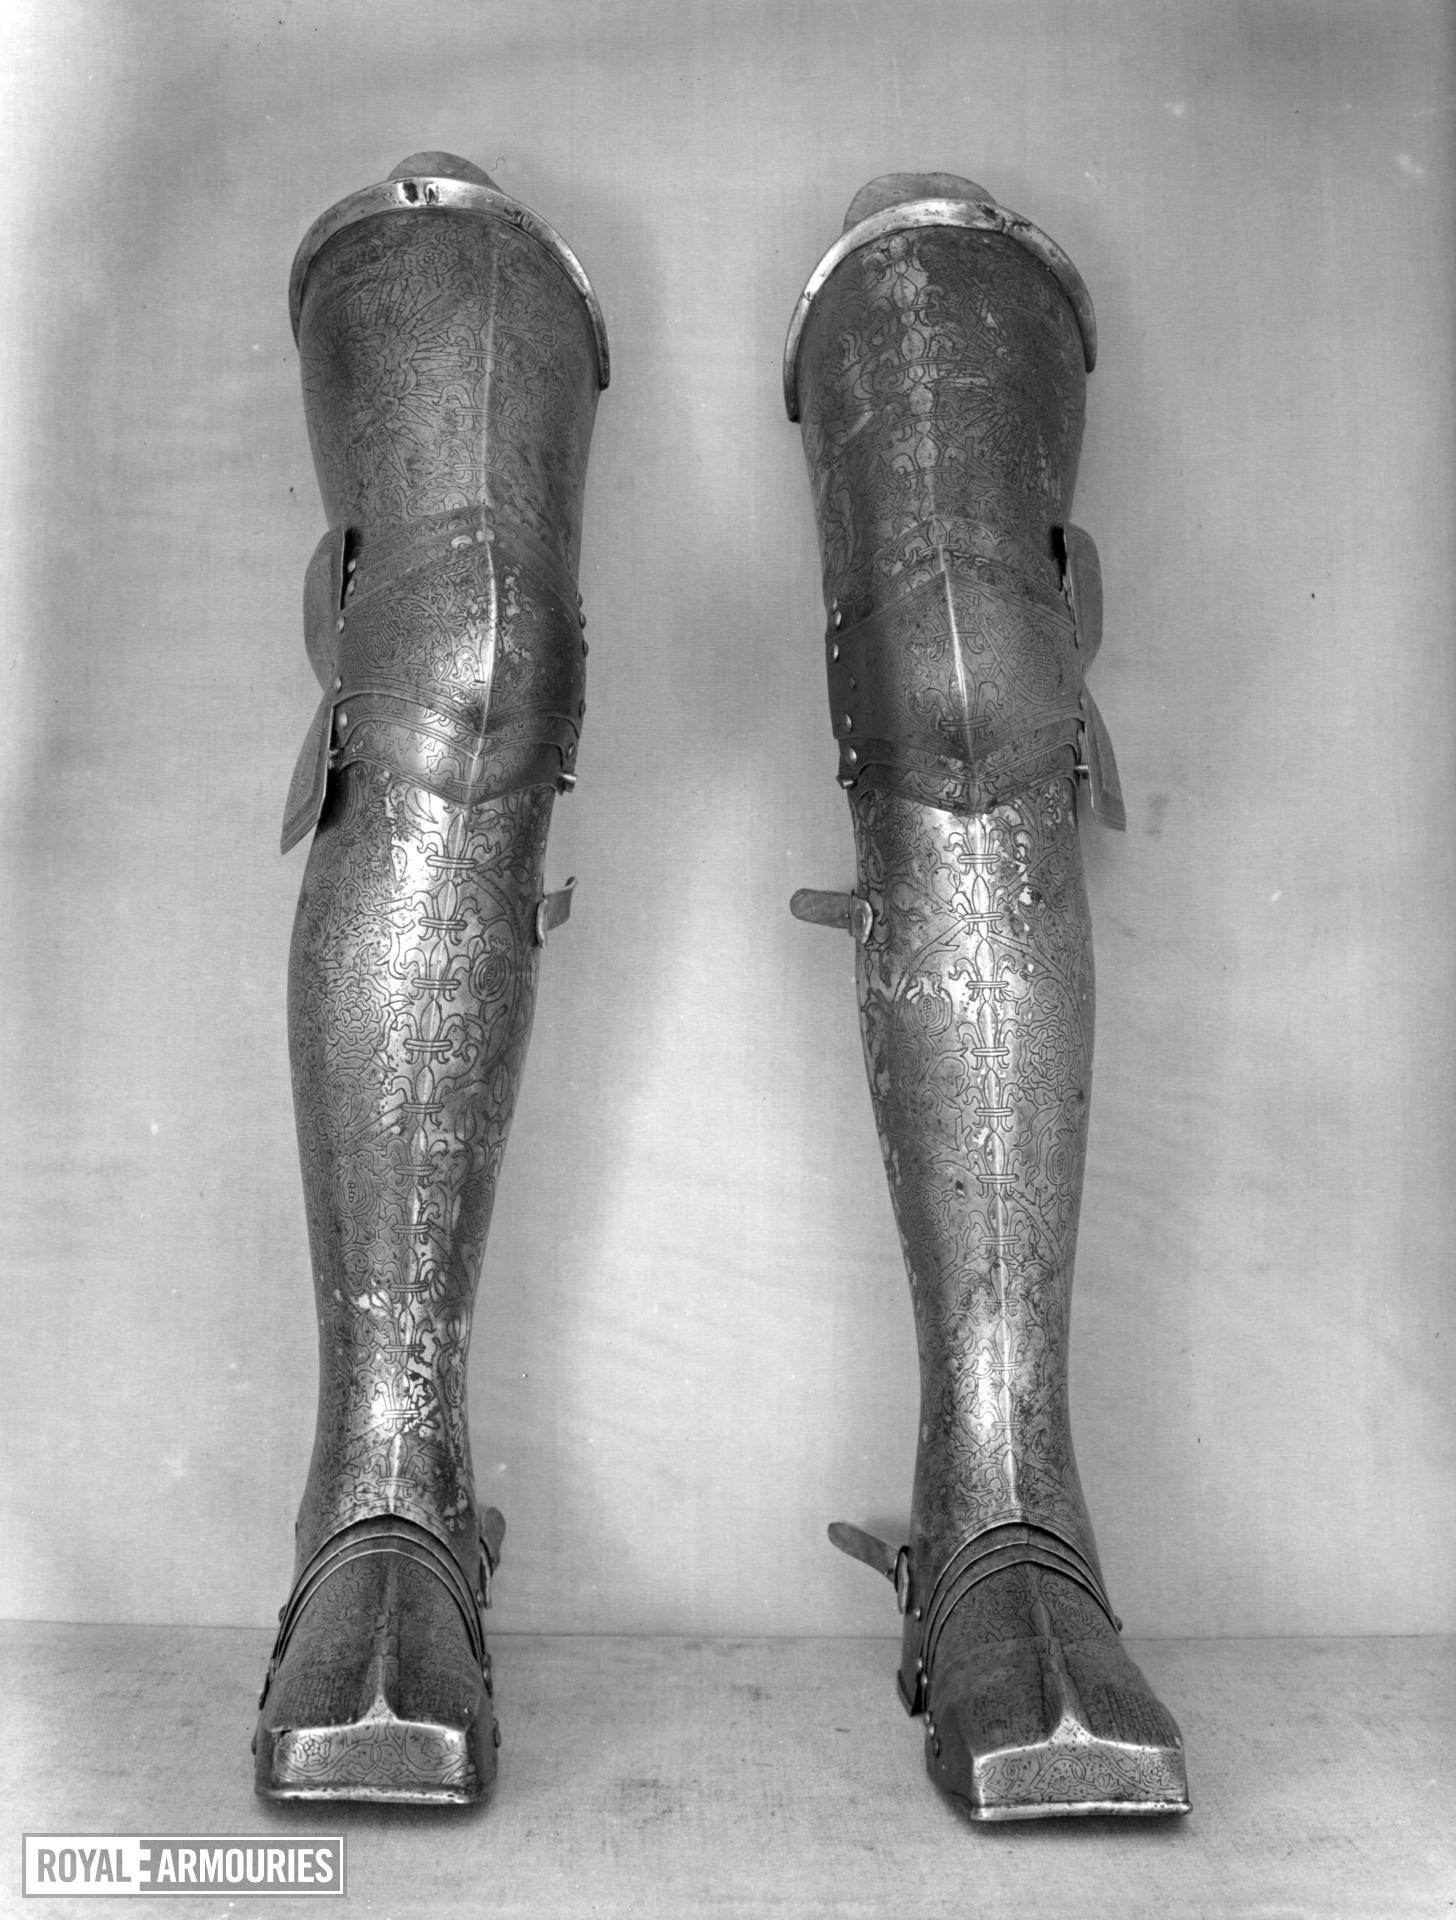 Crupper From the silvered and engraved armour of Henry VIII. By Guille Margot, decorated by Paul van Vrelant.